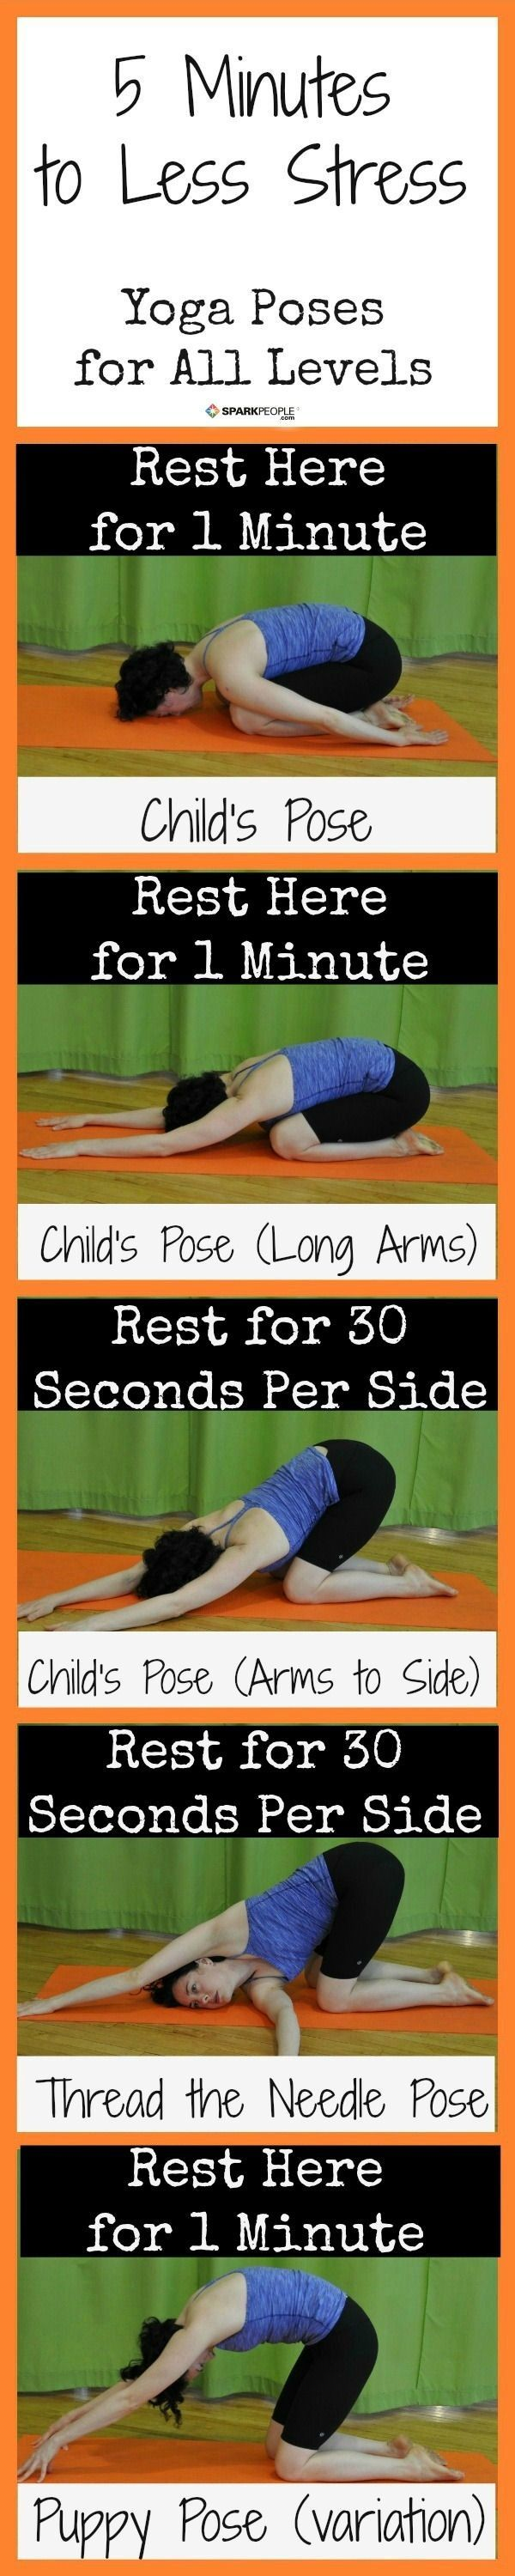 Yoga Poses for Stress Relief